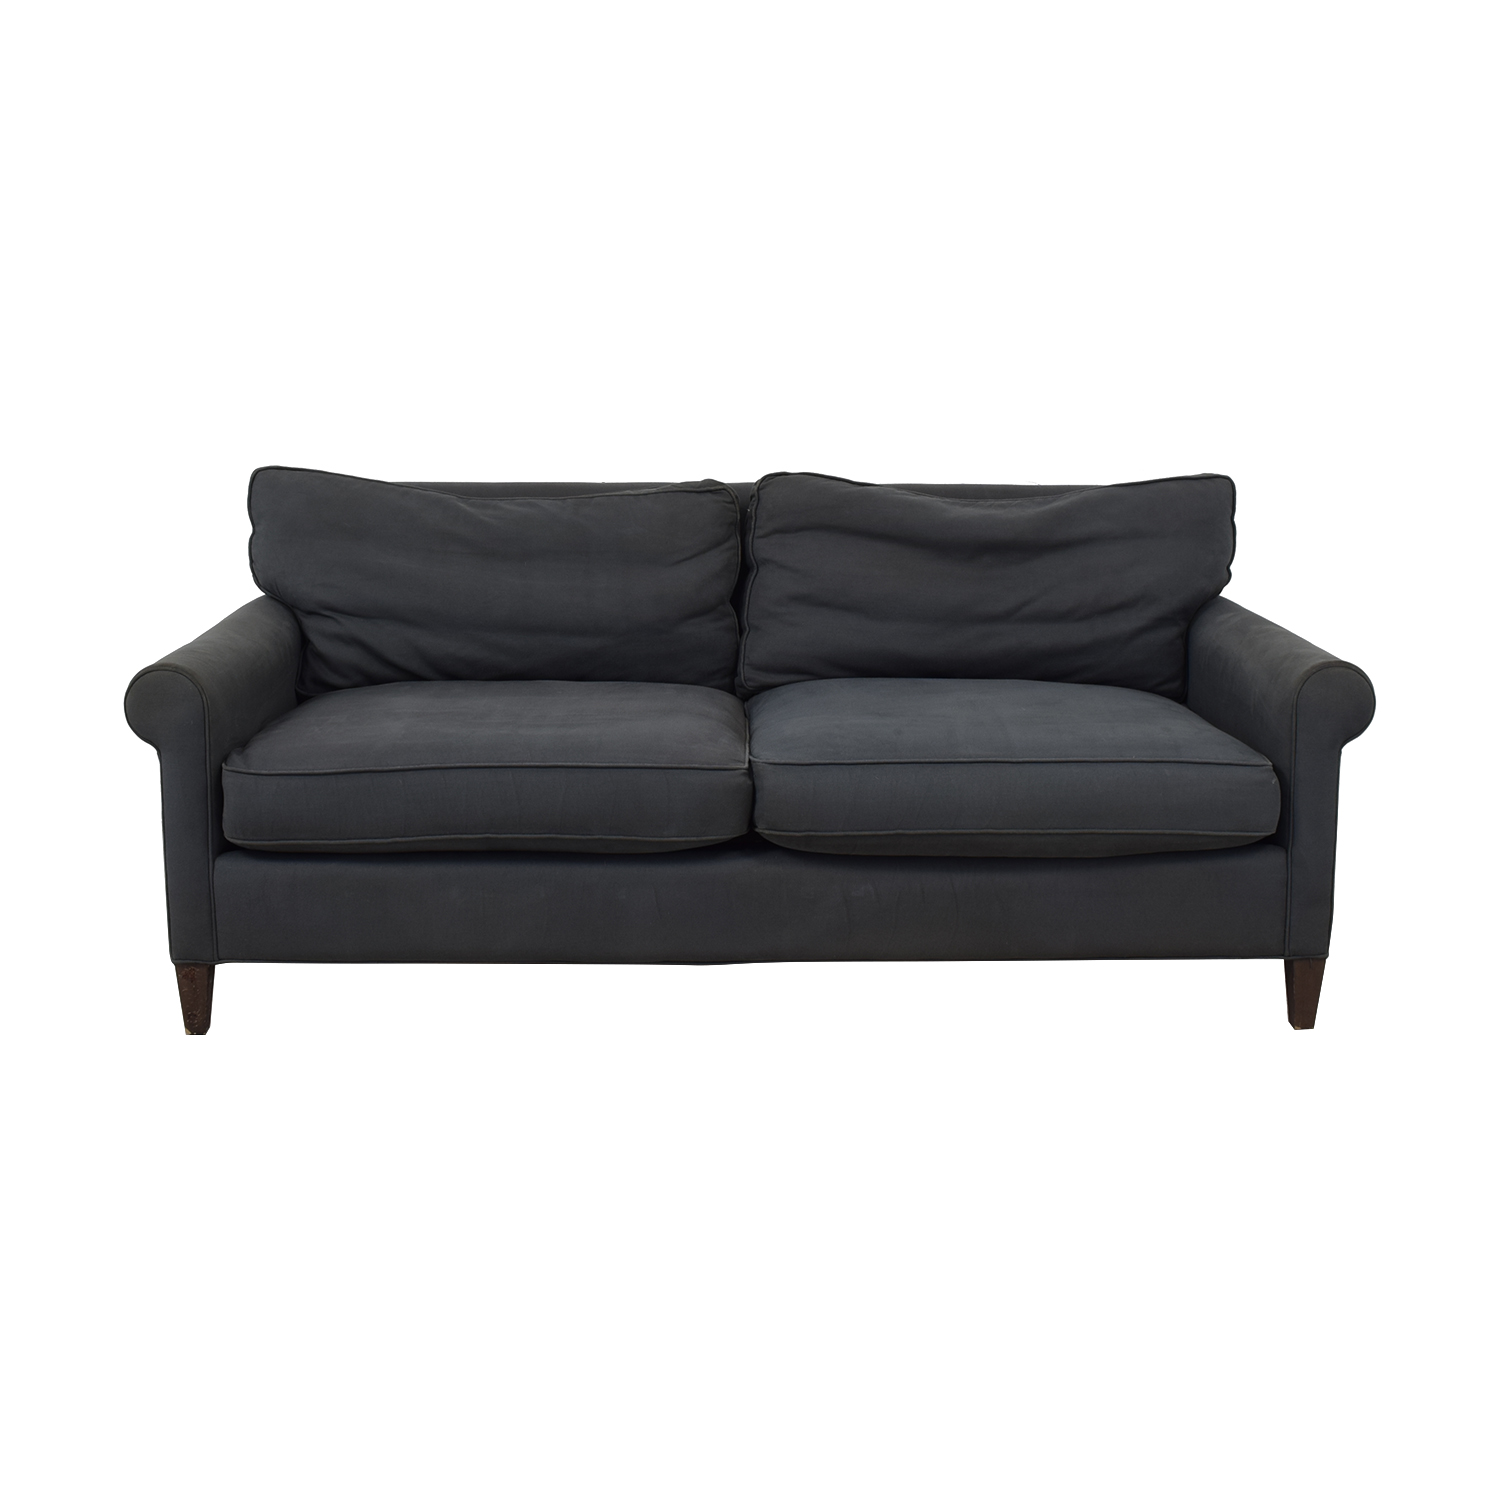 Crate & Barrel Crate & Barrel Montclair Apartment Sofa nj